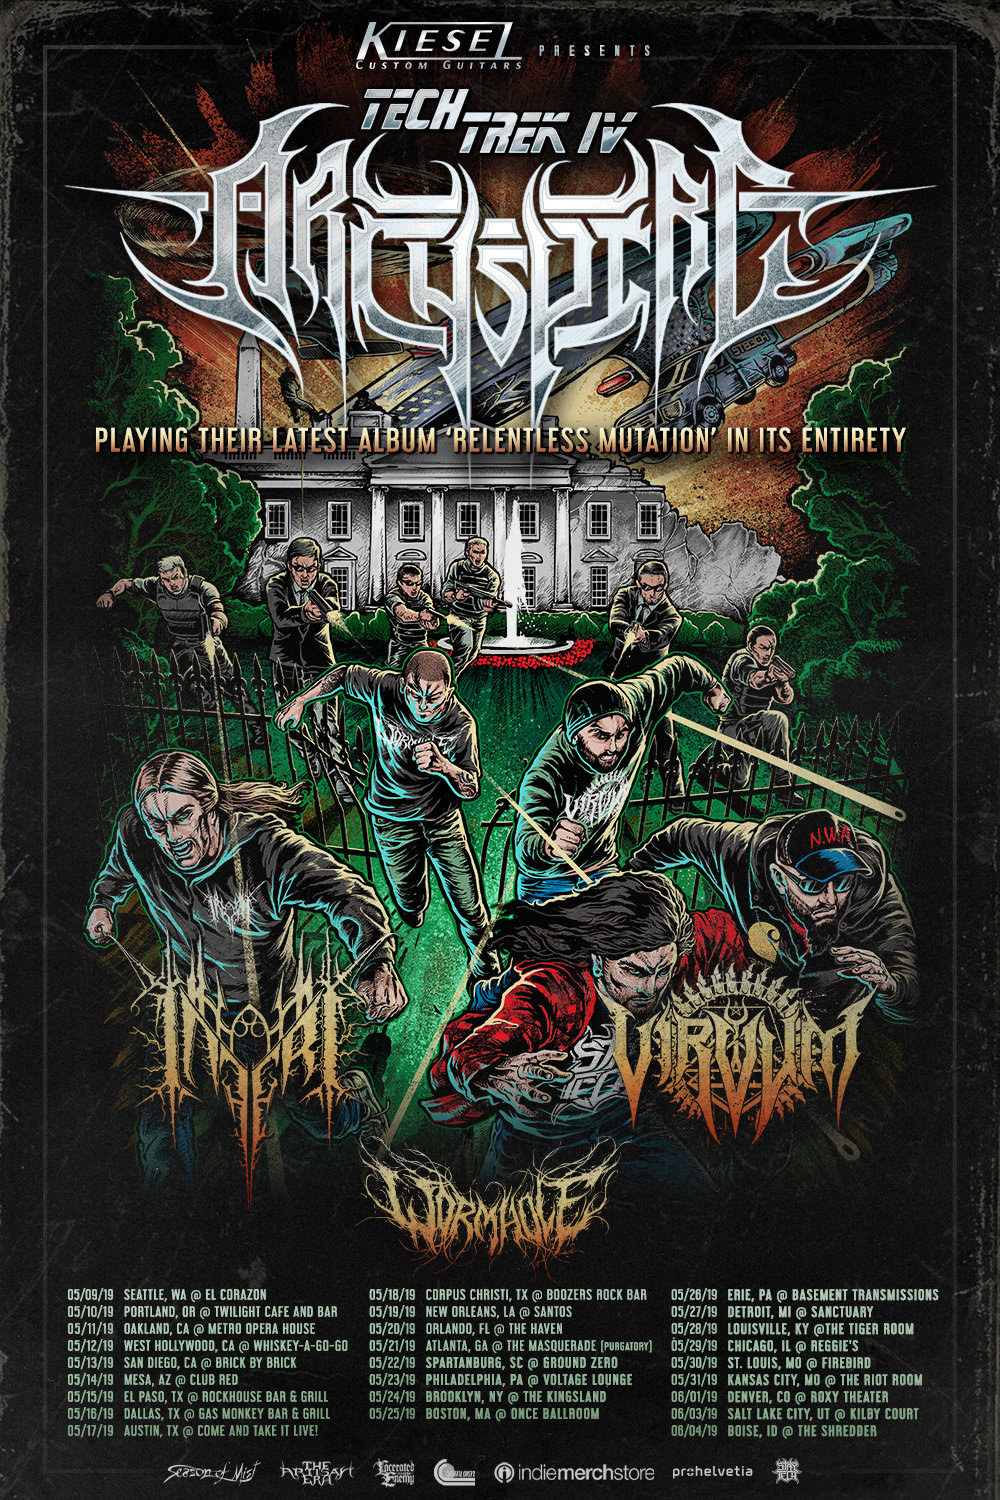 Kiesal Guitars Presents TECH TREK IV   ARCHSPIRE + VIRVUM (w/ Inferi and Wormhole):   05/09: Seattle, WA @ El Corazon ( TICKETS  //  EVENT LINK ) 05/10: Portland, OR @ Twilight Cafe & Bar ( TICKETS  //  EVENT LINK ) 05/11: Oakland, CA @ Metro Opera House ( TICKETS  //  EVENT LINK ) 05/12: West Hollywood, CA @ Whiskey-A-Go-Go ( TICKETS  //  EVENT LINK ) 05/13: San Diego, CA @ Brick By Brick ( TICKETS ) 05/14: Mesa, AZ @ Club Red ( TICKETS  //  EVENT LINK ) 05/15: El Paso, TX @ Rockhouse Bar & Grill ( EVENT LINK ) **Tix available @ door D.O.S. 05/16: Dallas, TX @ Gas Monkey Bar & Grill ( TICKETS  //  EVENT LINK ) 05/17: Austin, TX @ Come And Take It Live! ( TICKETS  //  EVENT LINK ) 05/18: Corpus Christi, TX @ Boozers Rock Bar ( TICKETS ) 05/19: New Orleans, LA @ Santos **Tix TBA** 05/20: Orlando, FL @ The Haven ( TICKETS  //  EVENT LINK ) 05/21: Atlanta, GA @ The Masquerade (Purgatory) ( TICKETS  //  EVENT LINK ) 05/22: Spartanburg, SC @ Ground Zero ( TICKETS  //  EVENT LINK ) 05/23: Philadelphia, PA @ Voltage Lounge ( TICKETS  //  EVENT LINK ) 05/24: Brooklyn, NY @ The Kingsland ( TICKETS  //  EVENT LINK ) 05/25: Boston, MA @ Once Ballroom ( TICKETS  //  EVENT LINK ) 05/26: Erie, PA @ Basement Transmissions ( TICKETS  //  EVENT LINK ) 05/27: Detroit, MI @ Sanctuary ( TICKETS  //  EVENT LINK ) 05/28: Louisville, KY @ The Tiger Room ( TICKETS  //  EVENT LINK ) 05/29: Chicago, IL @ Reggie's ( TICKETS  //  EVENT LINK ) 05/30: St. Louis, MO @ Firebird ( TICKETS  //  EVENT LINK ) 05/31: Kansas City, MO @ The Riot Room ( TICKETS ) 06/01: Denver, CO @ Roxy Theater ( TICKETS  //  EVENT LINK ) 06/03: Salt Lake City, UT @ Kilby Court ( TICKETS  //  EVENT LINK ) 06/04: Boise, ID @ The Shredder ( TICKETS  //  EVENT LINK )  Welcome to first class technical death metal madness. Machine gun vocals rattle remorselessly over a furious flurry of arpeggios, scales, and everything else that the two string wizards of ARCHSPIRE can pick at break-finger speed out their guitars. If this sou